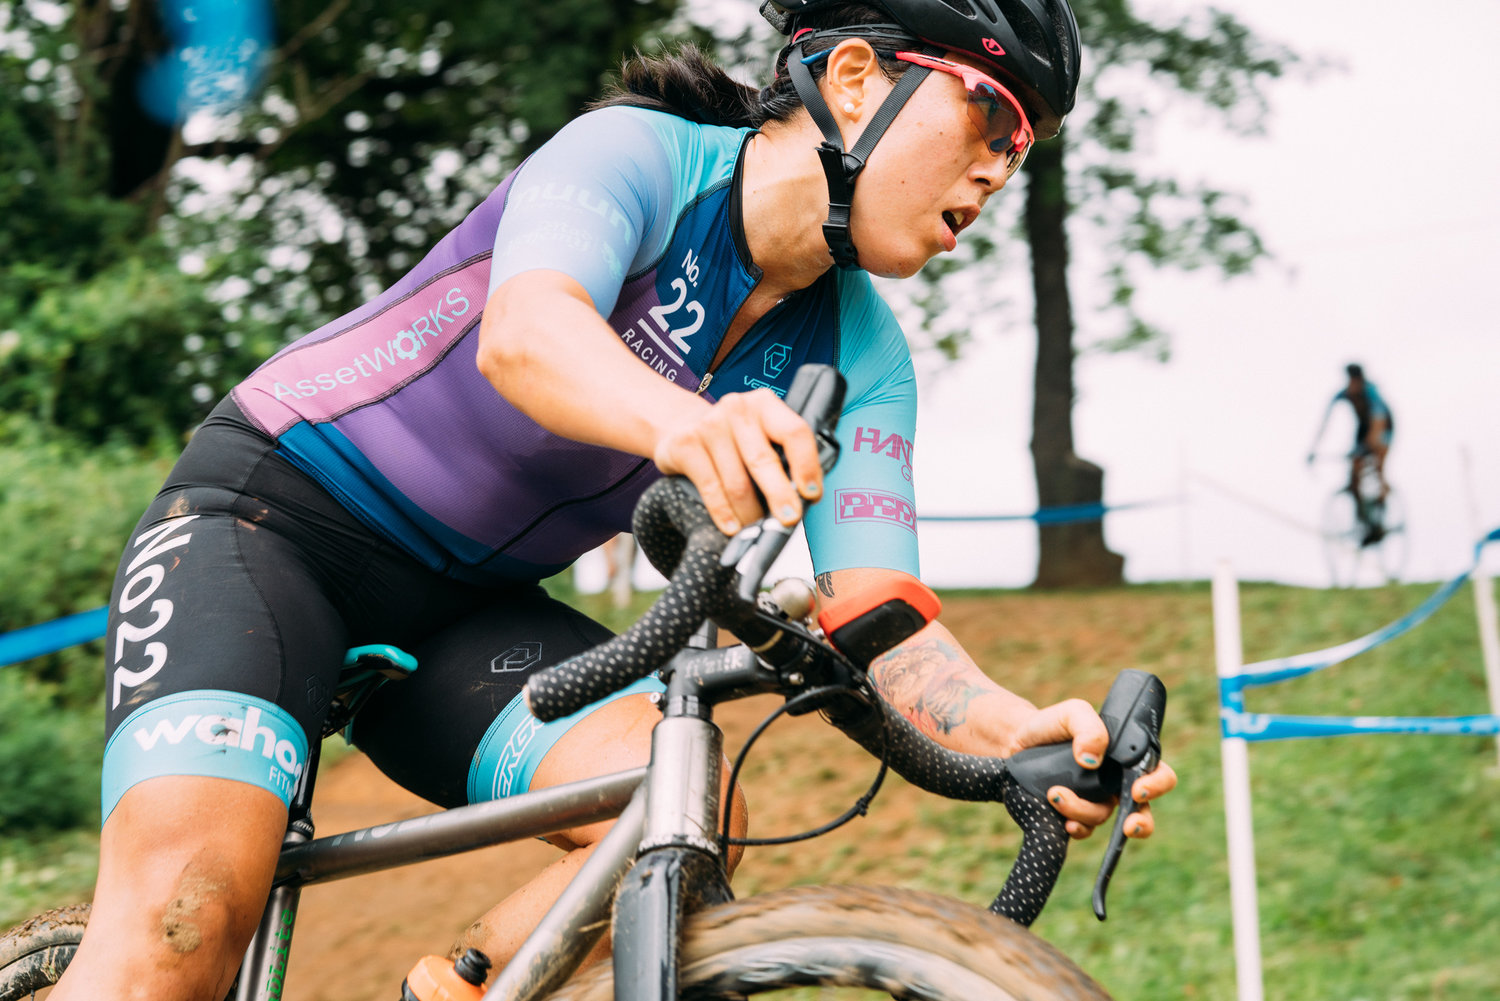 """Lucia racing at Nittany Lion Cyclocross 2018, from  """"Nittany Lion Cyclocross: Everything and Nothing"""""""